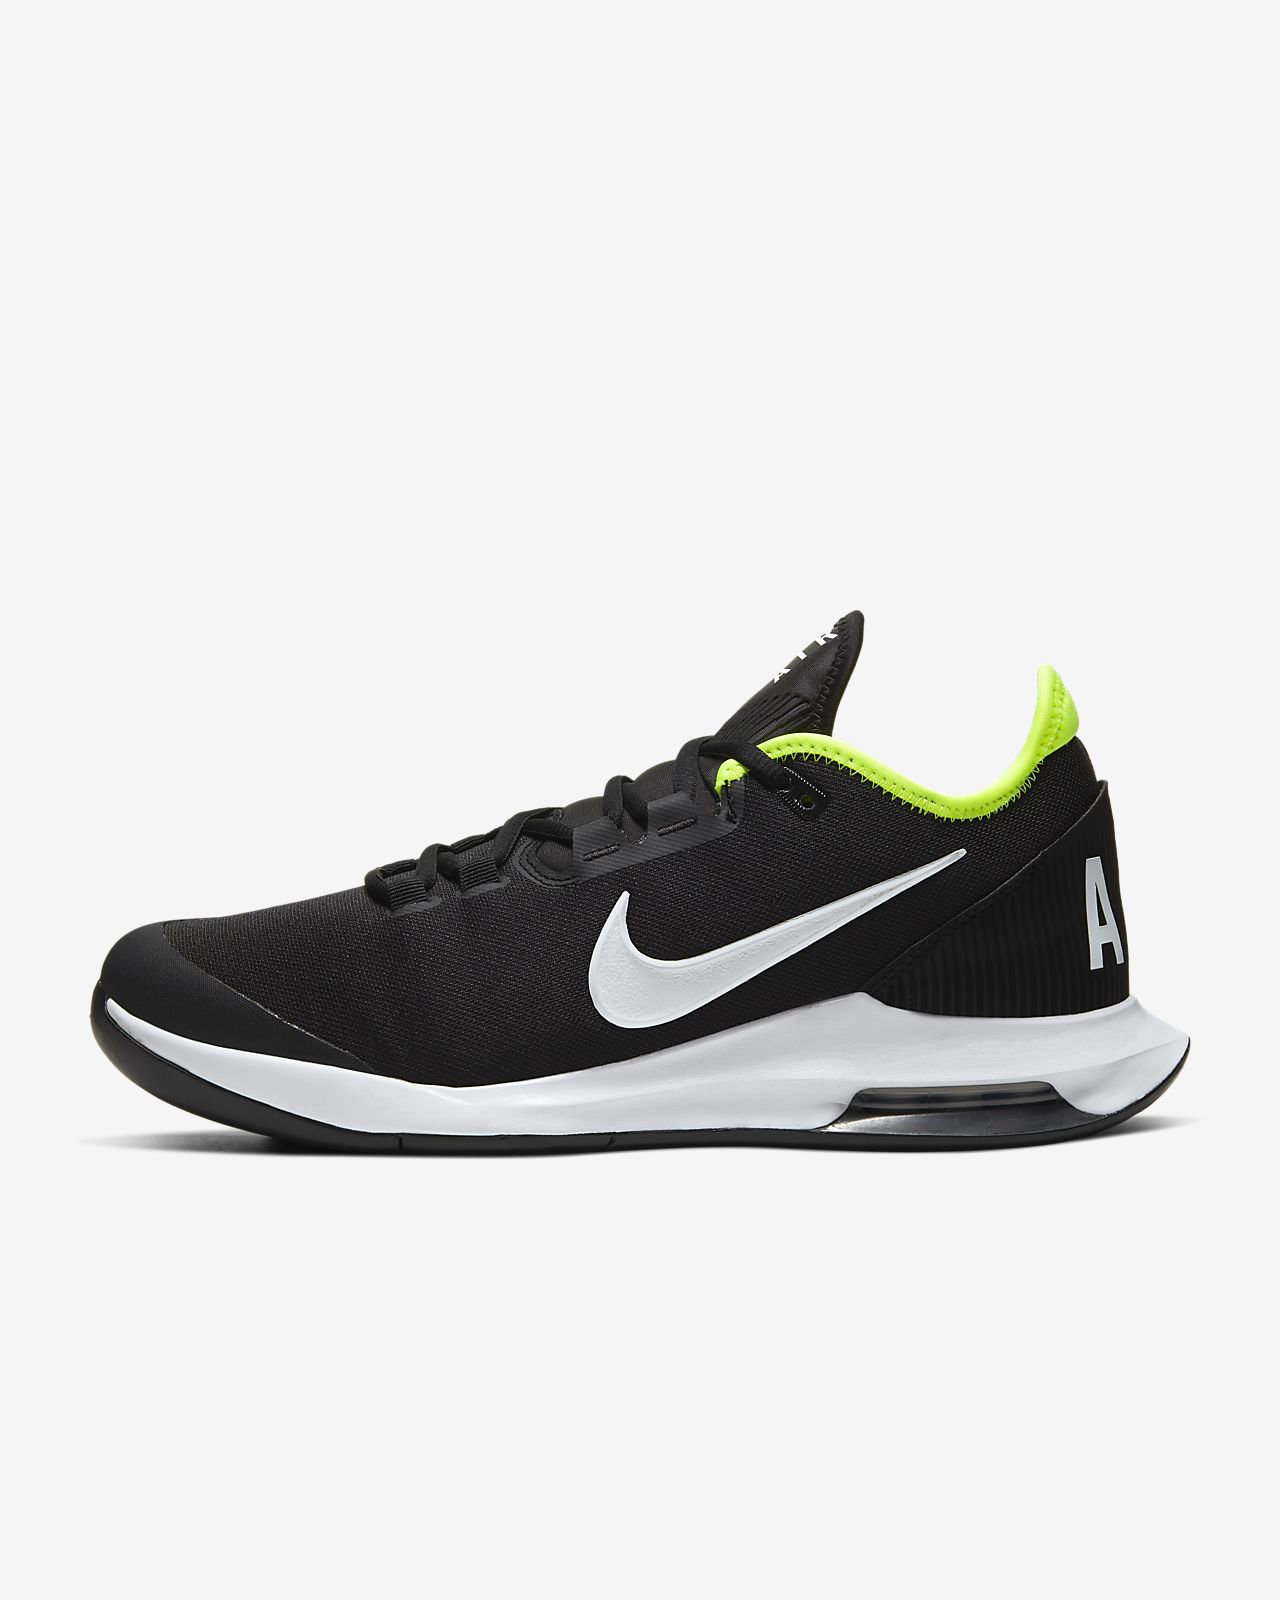 NikeCourt Air Max Wildcard Men's Tennis Shoe